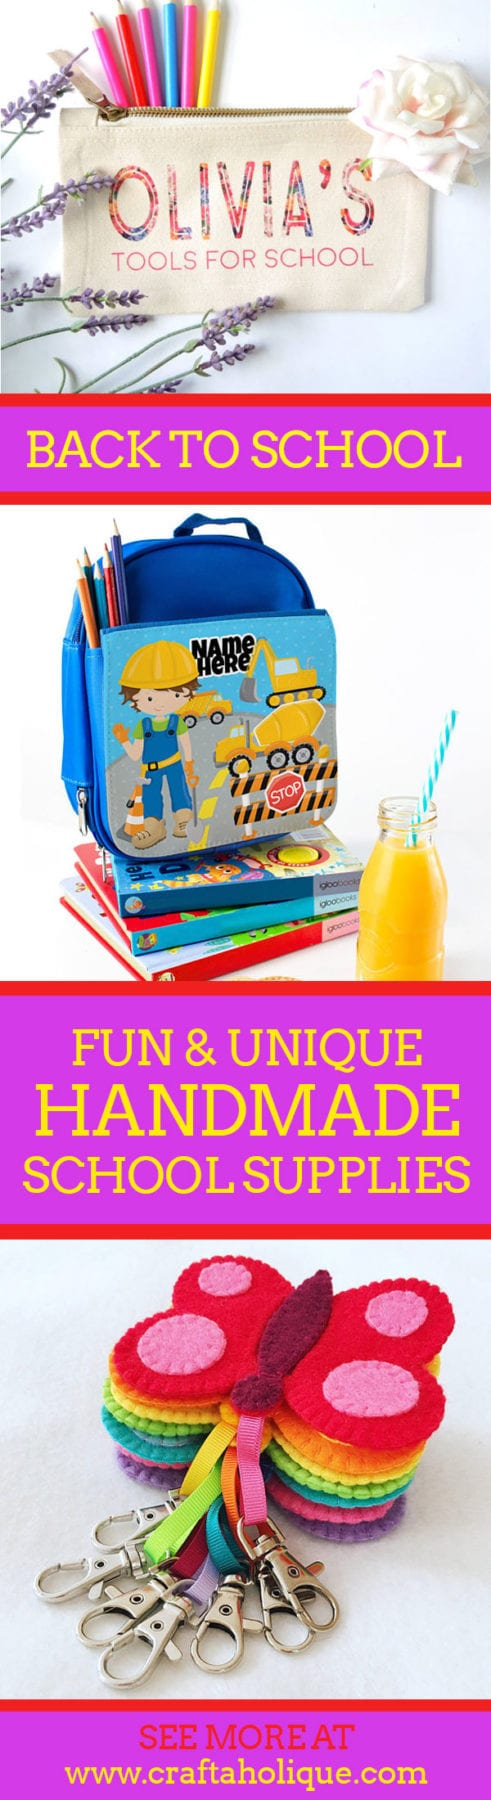 Unique back to school items for kids - handmade showcase from Craftaholique